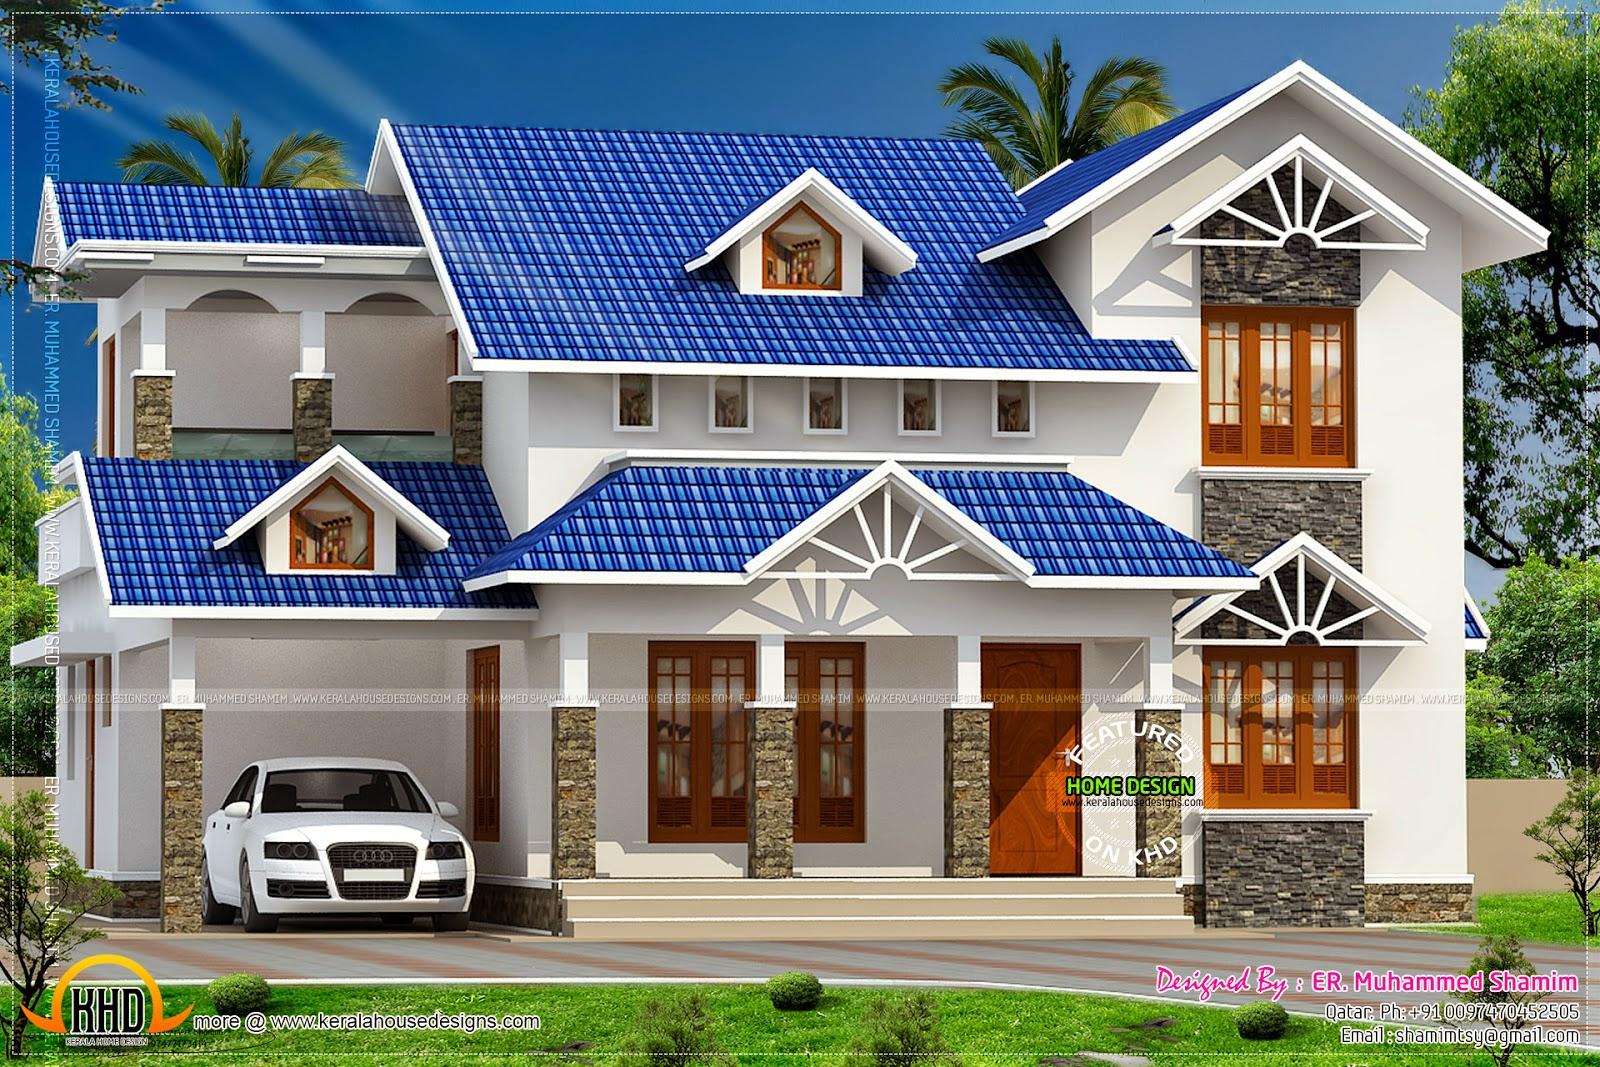 Nice sloped roof kerala home design kerala home design for Home painting design ideas